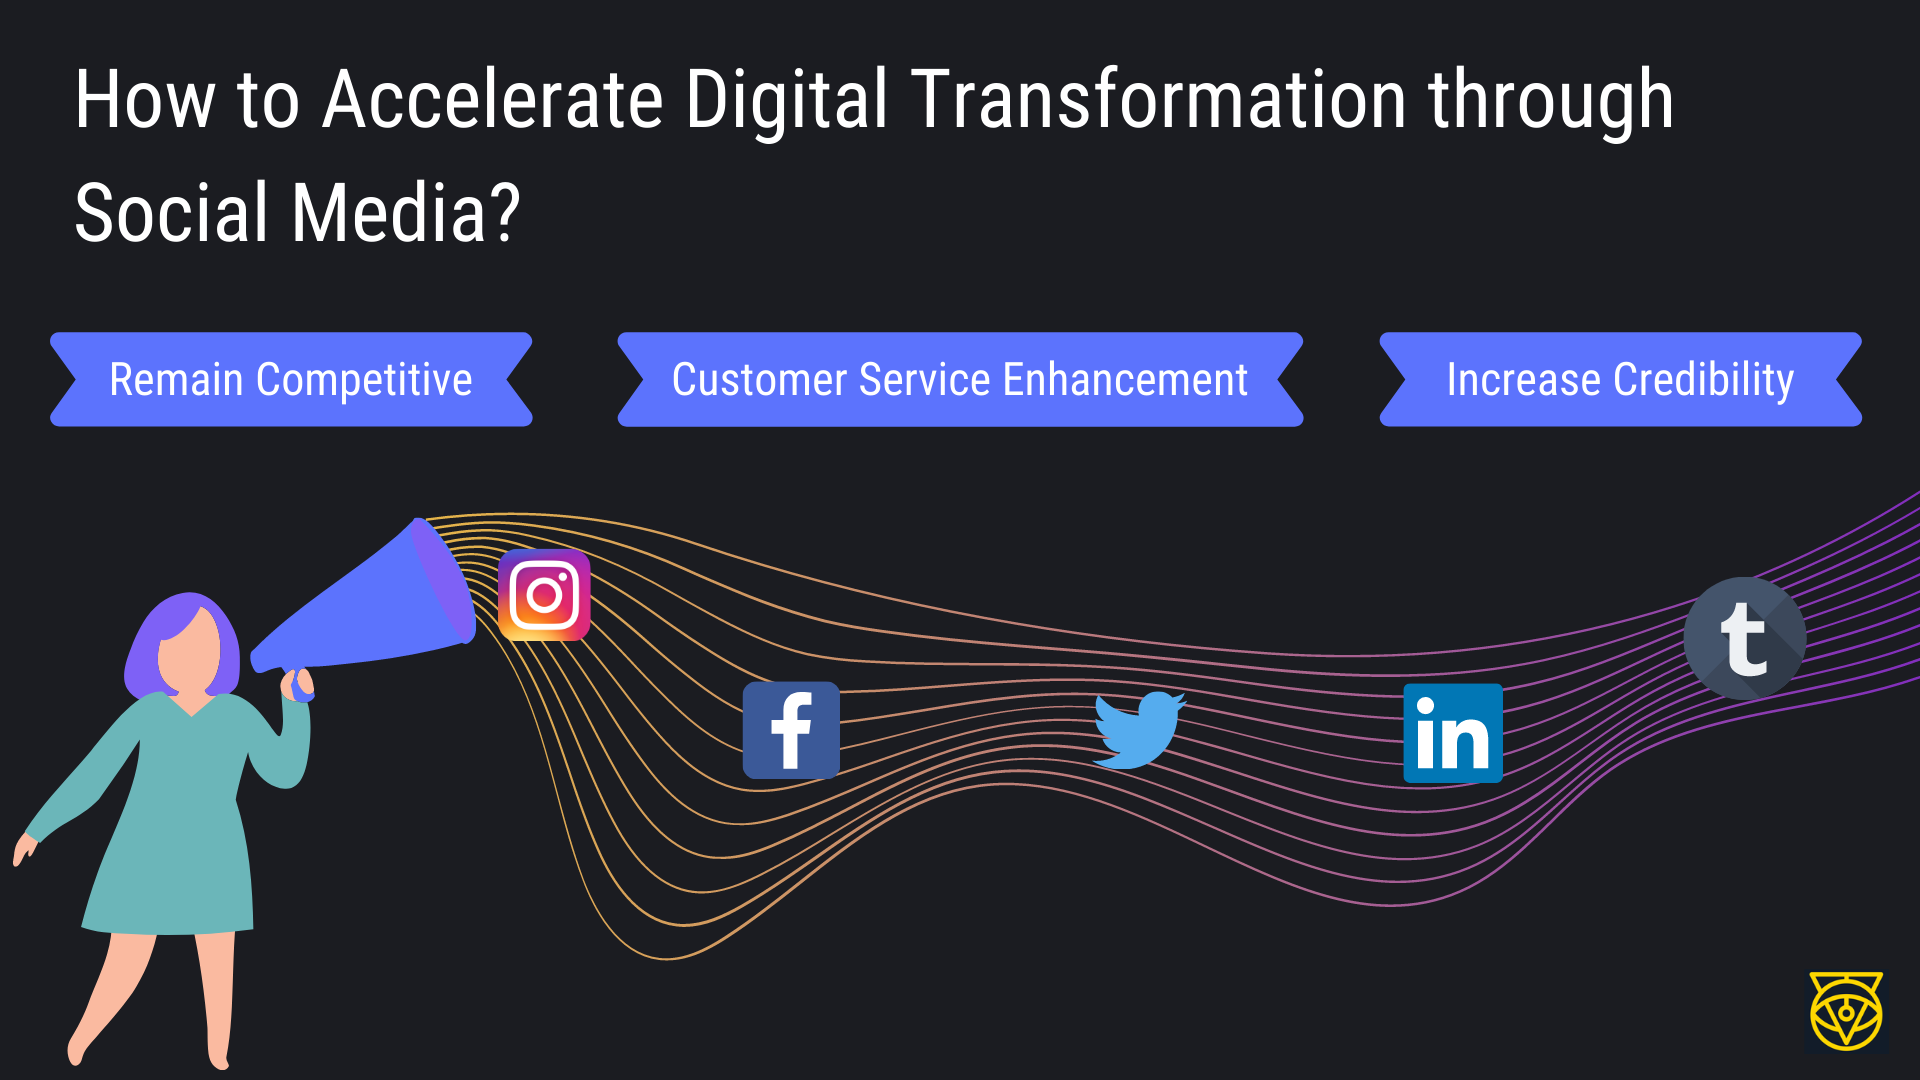 How to Accelerate Digital Transformation through Social Media?